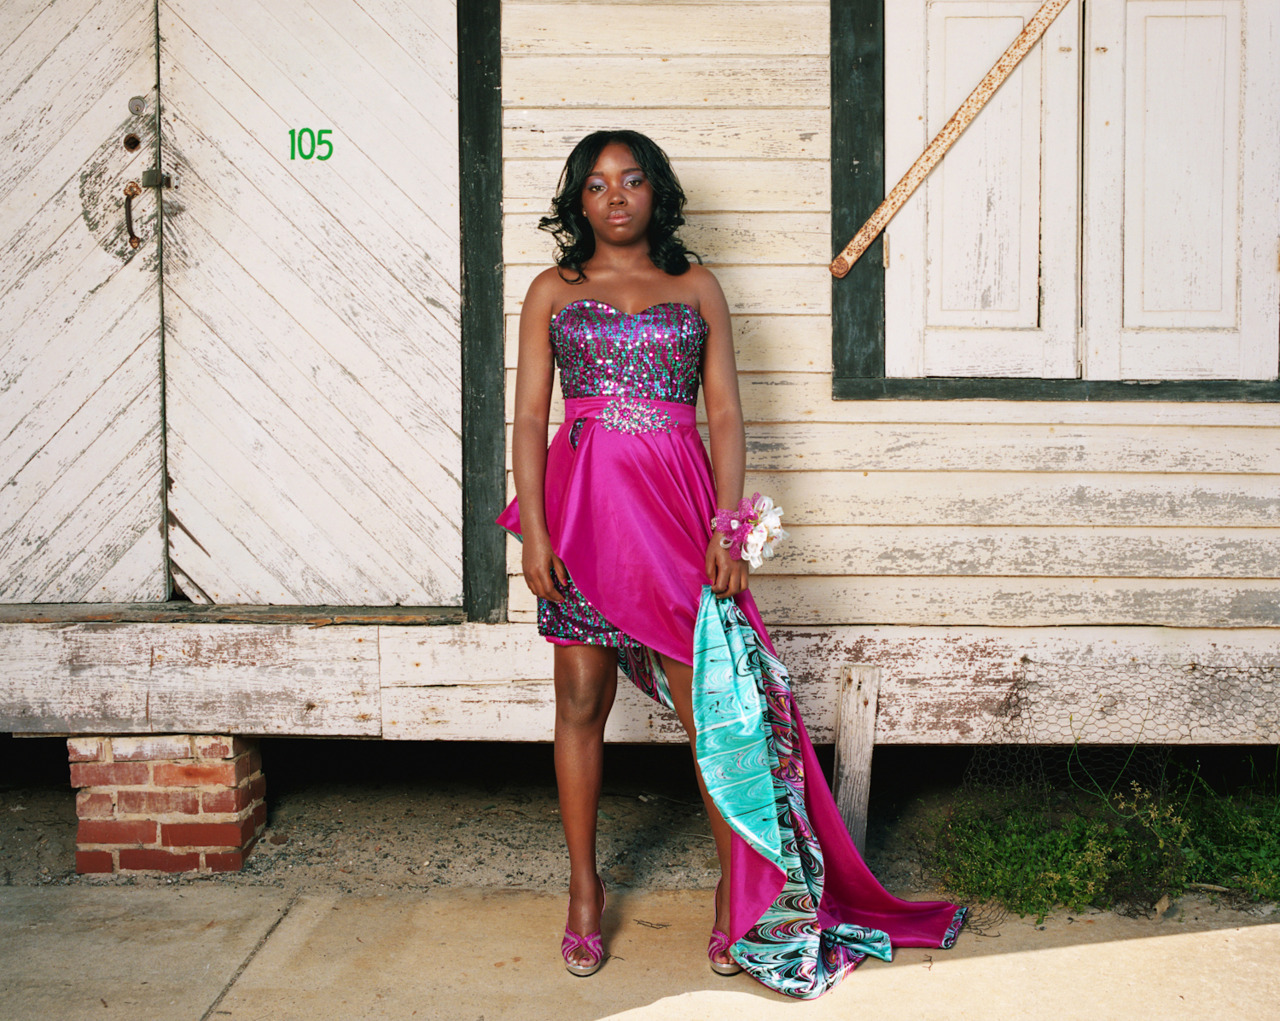 "Amber Jones, 18. Montgomery County High School, Mount Vernon, Ga.  ""There's not a lot to do in these parts, so prom is really the only time we get to dress up and hang out together,"" she says. Gillian Laub crossed the country to capture the bittersweet anticipation and excitement of high-school proms for TIME. See more here."